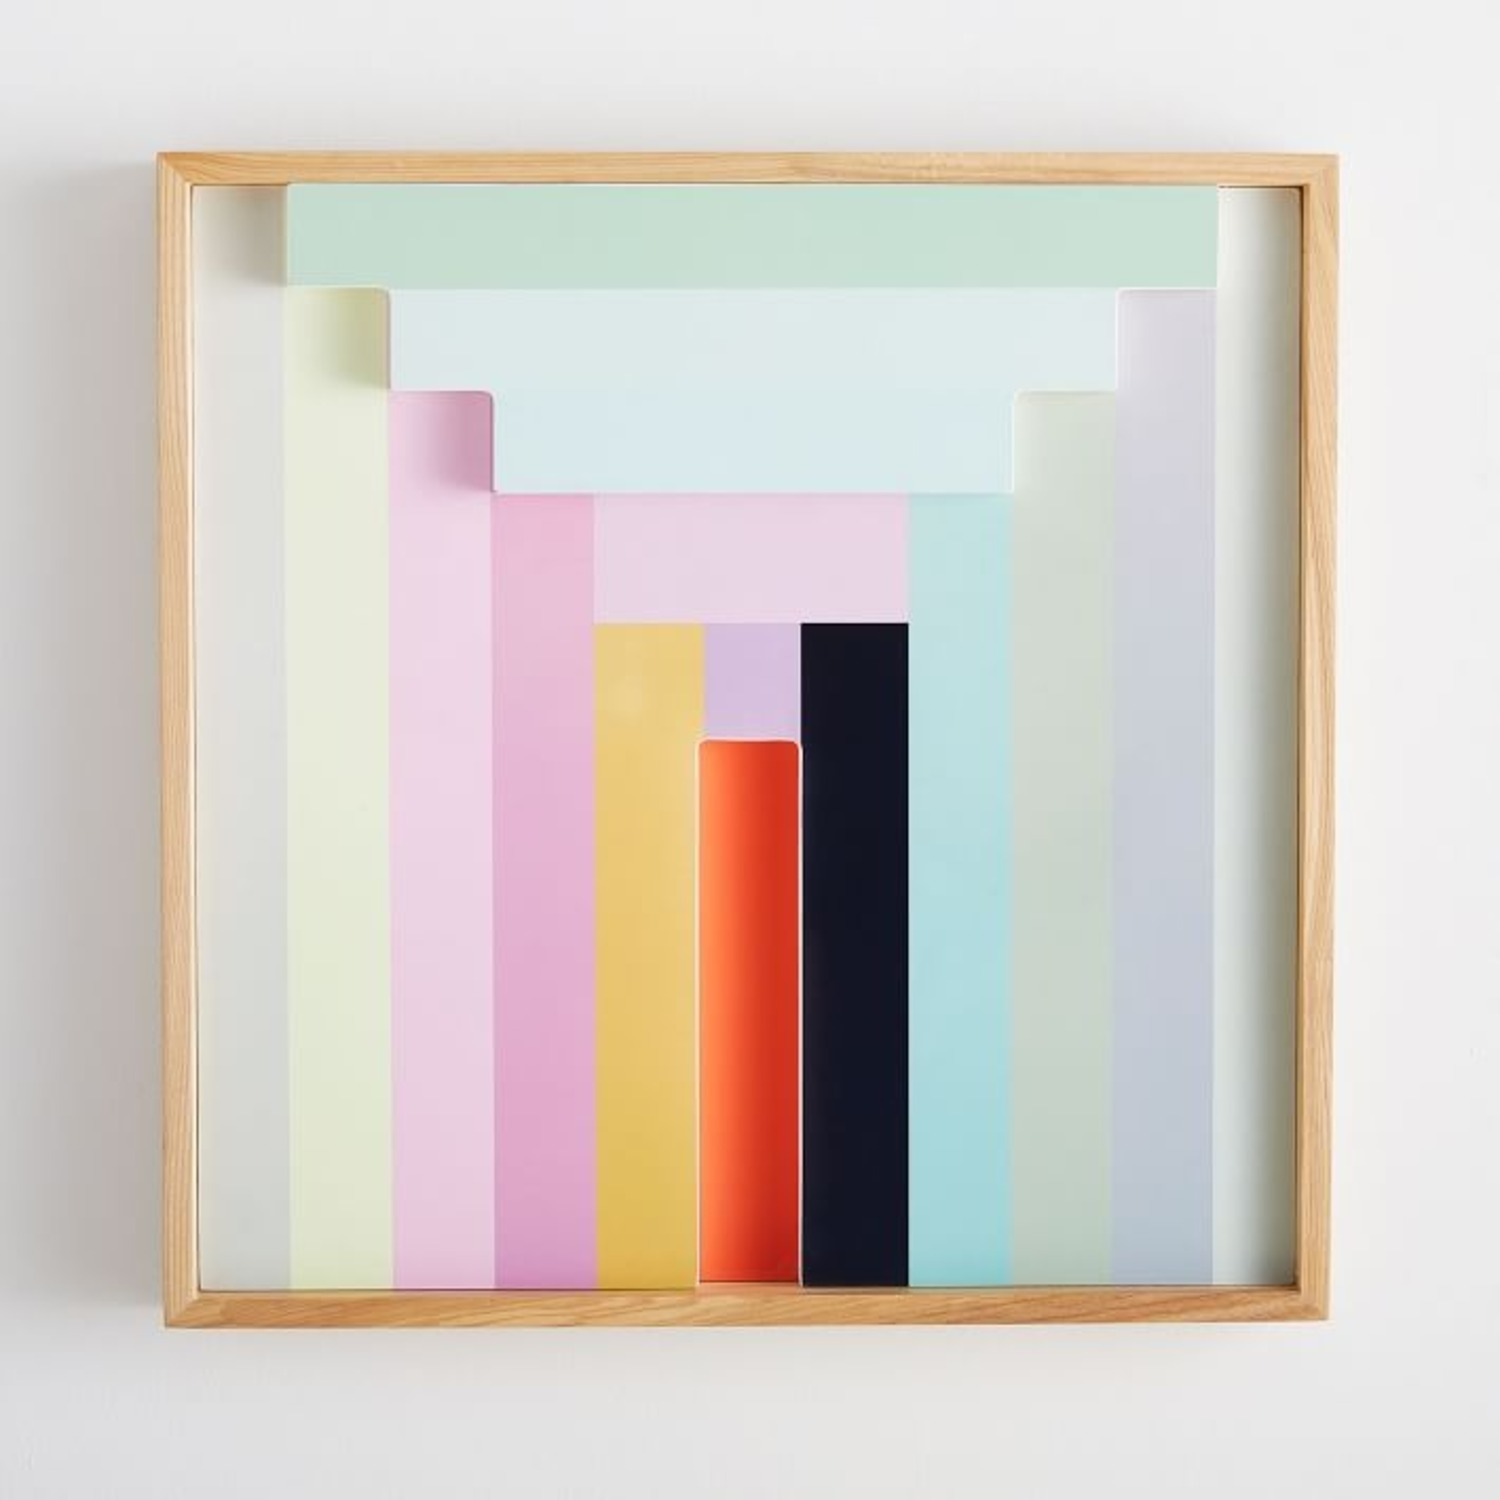 West Elm Margo Selby Colorblock Lacquer Wall Art - image-2